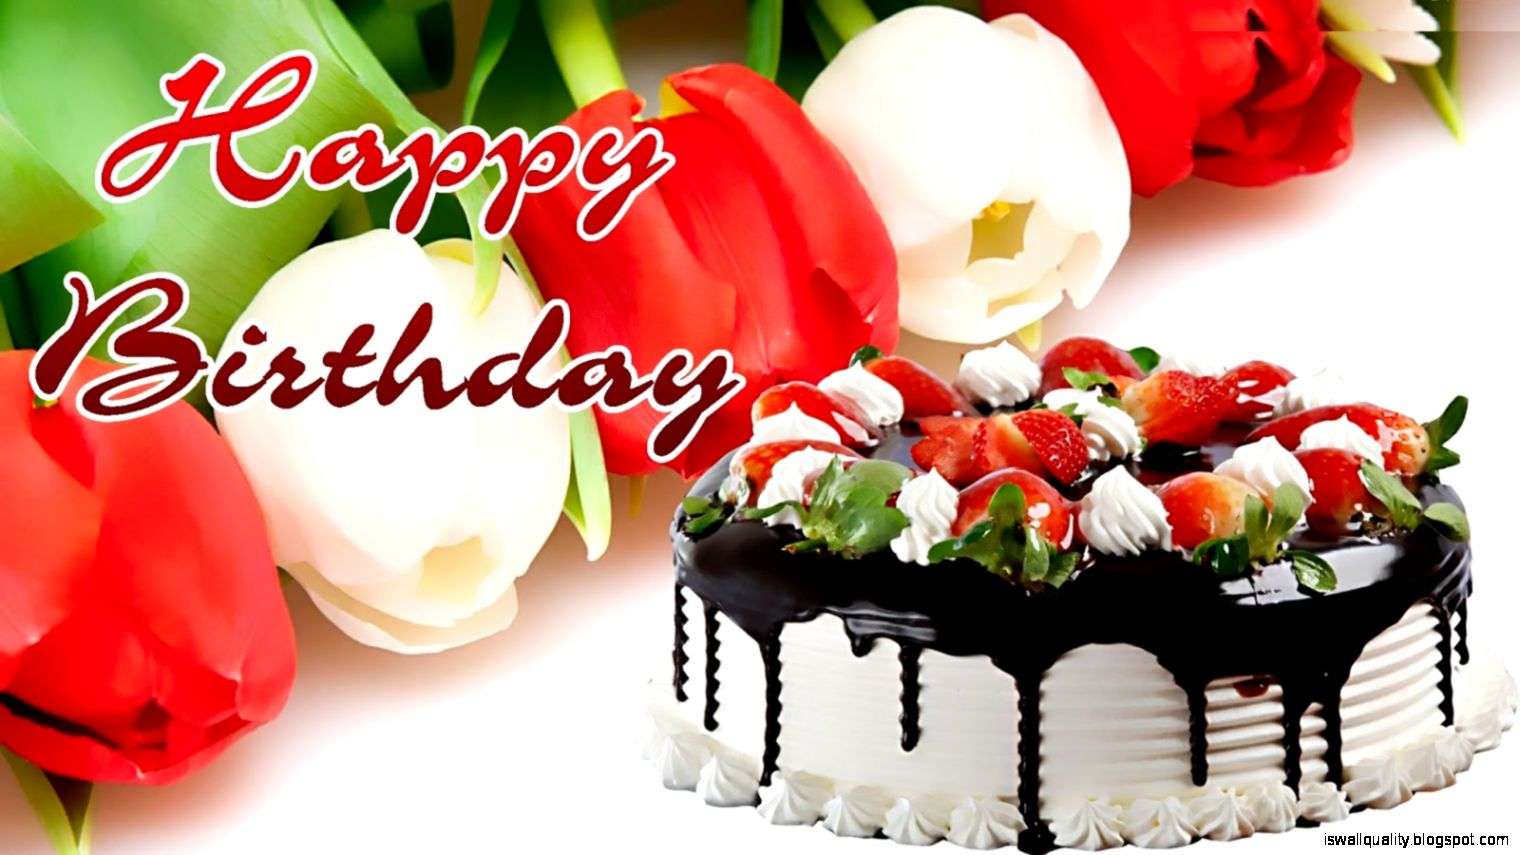 Free Download Happy Birthday Hd Wallpaper Wallpapers Quality